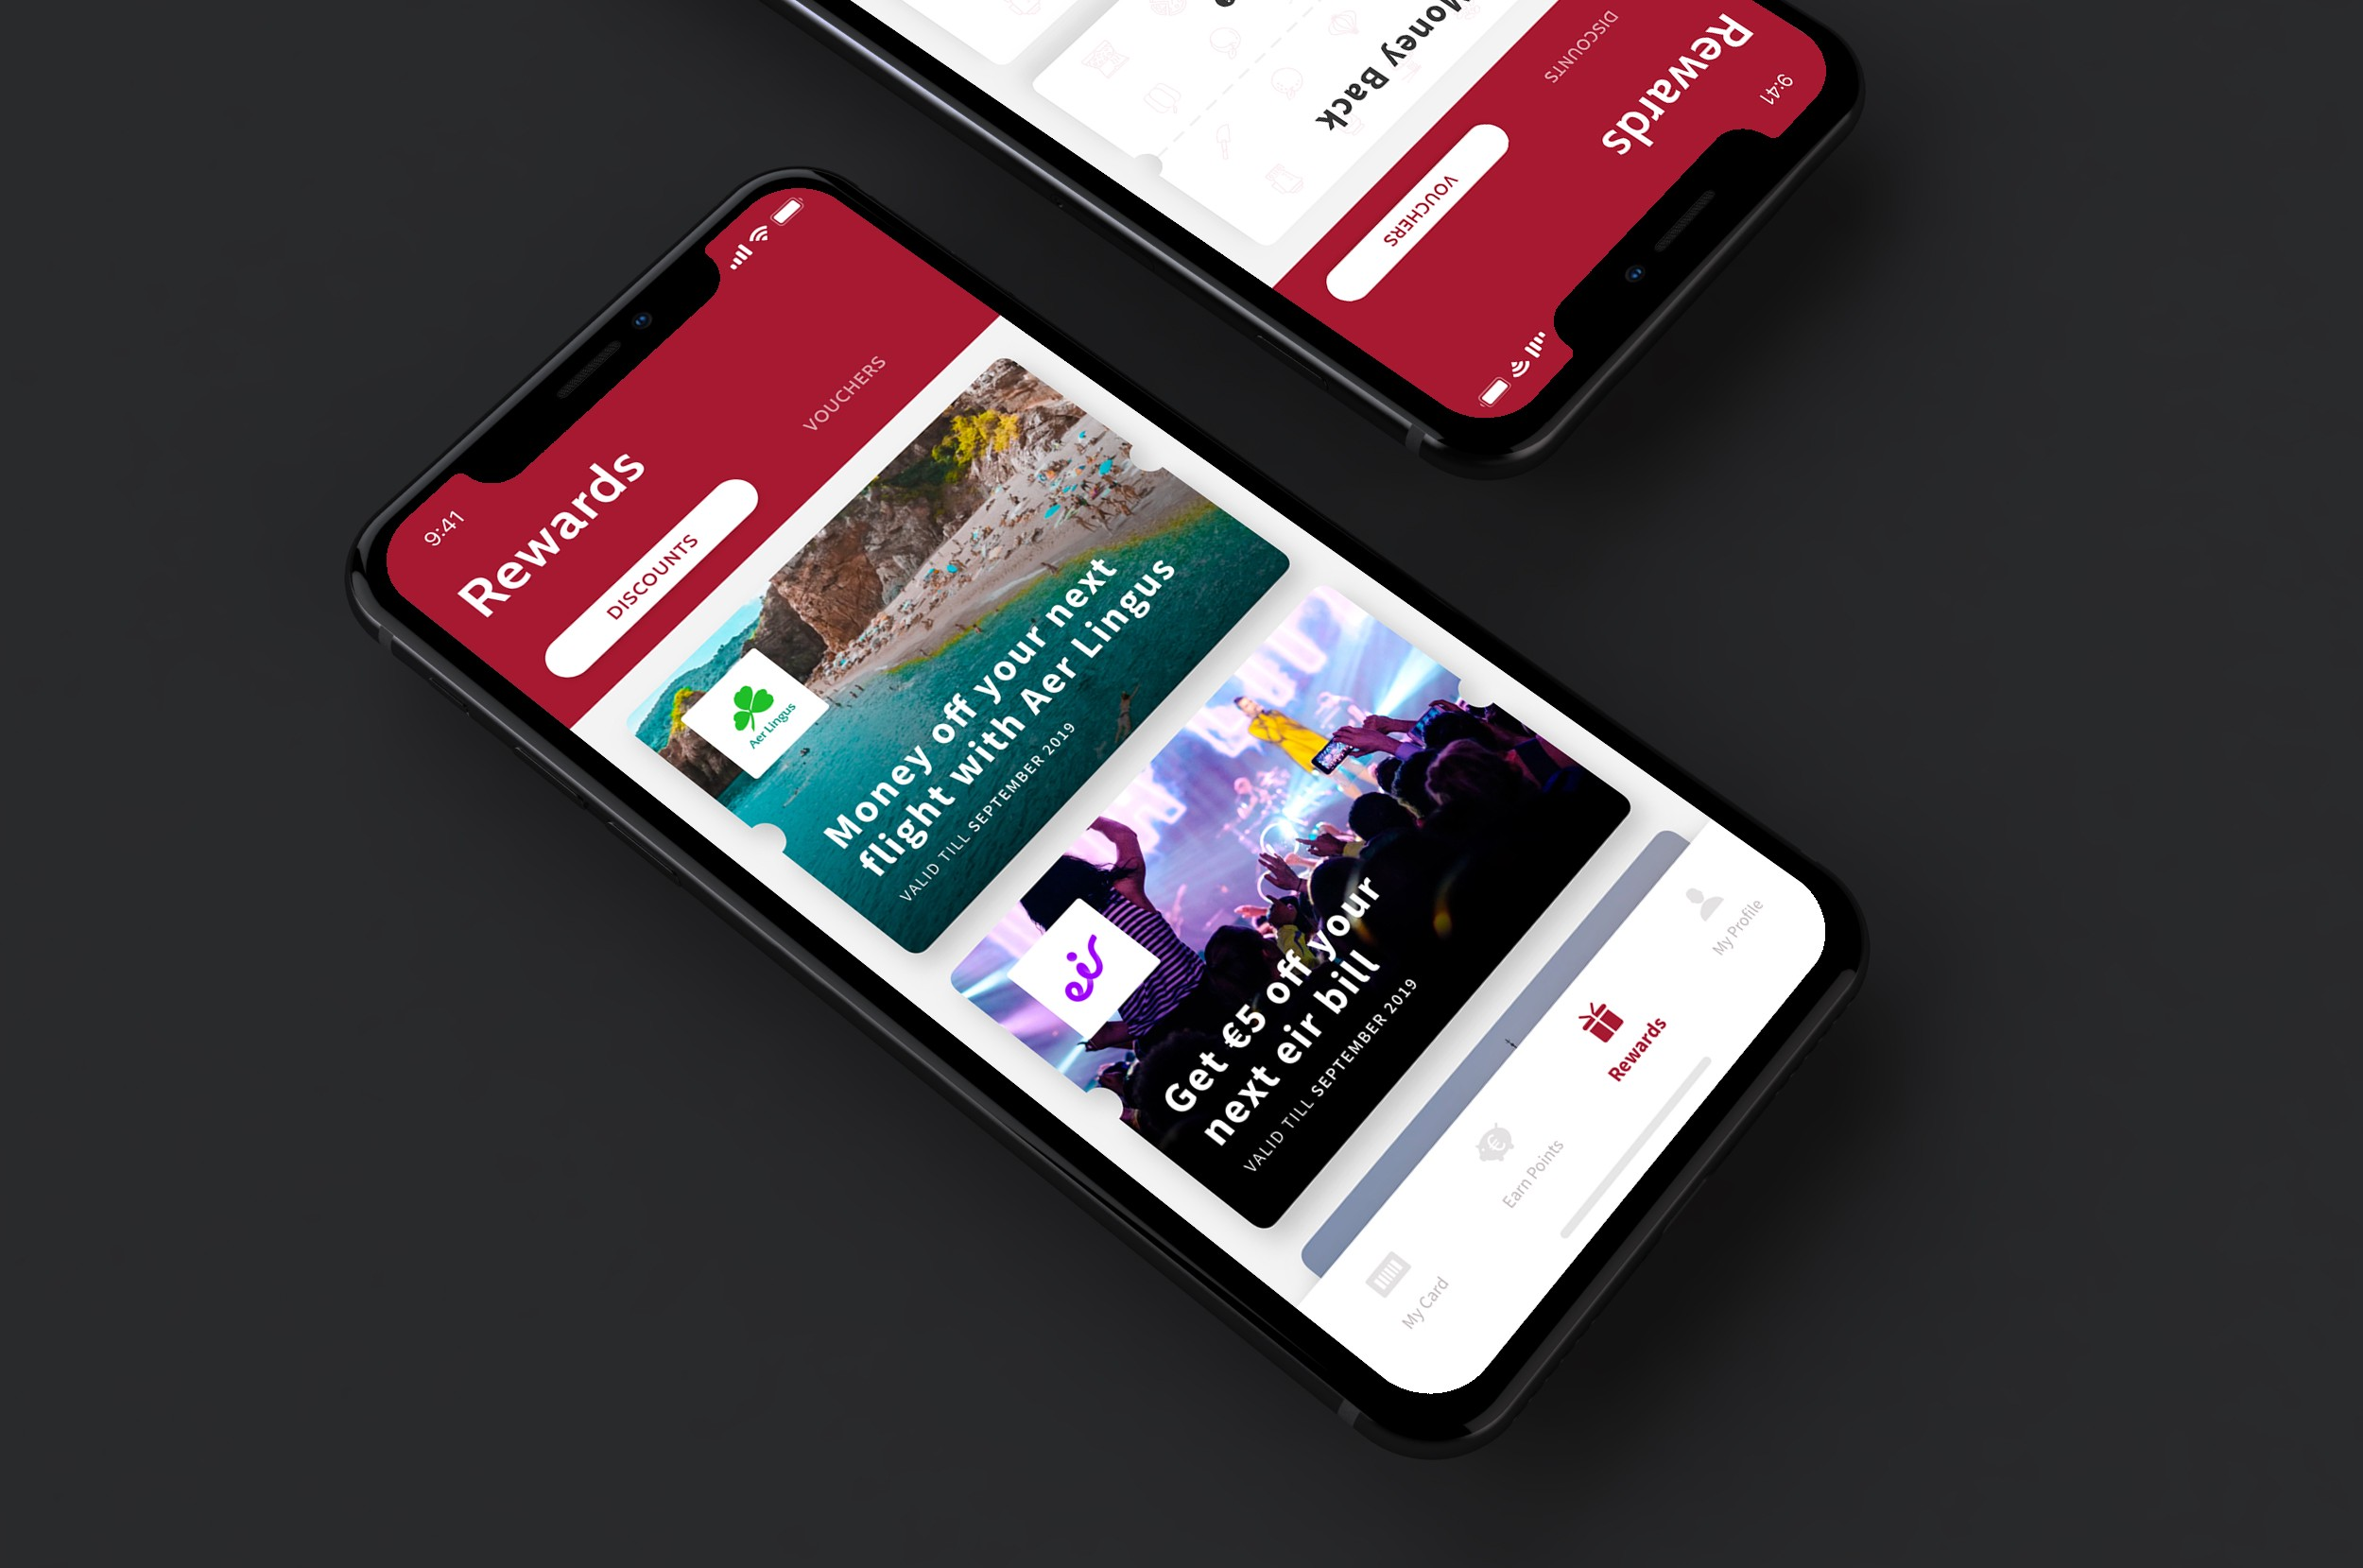 A mockup of the RealRewards app.